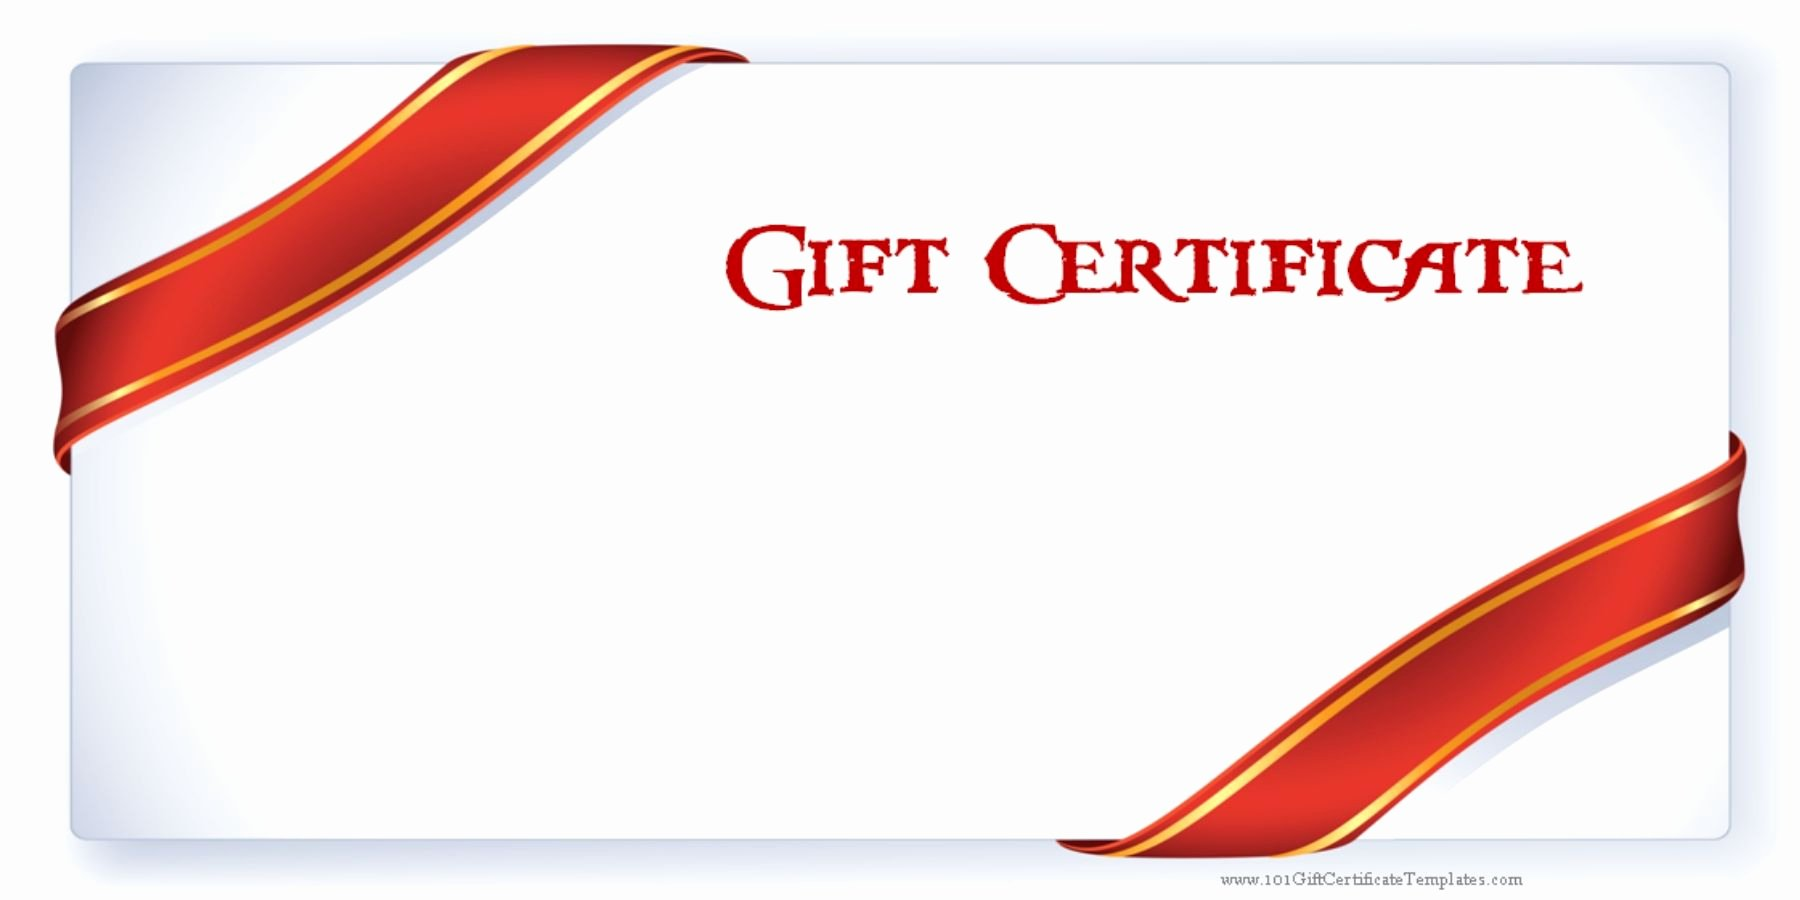 Father's Day Award Certificates Awesome Printable Gift Vouchers